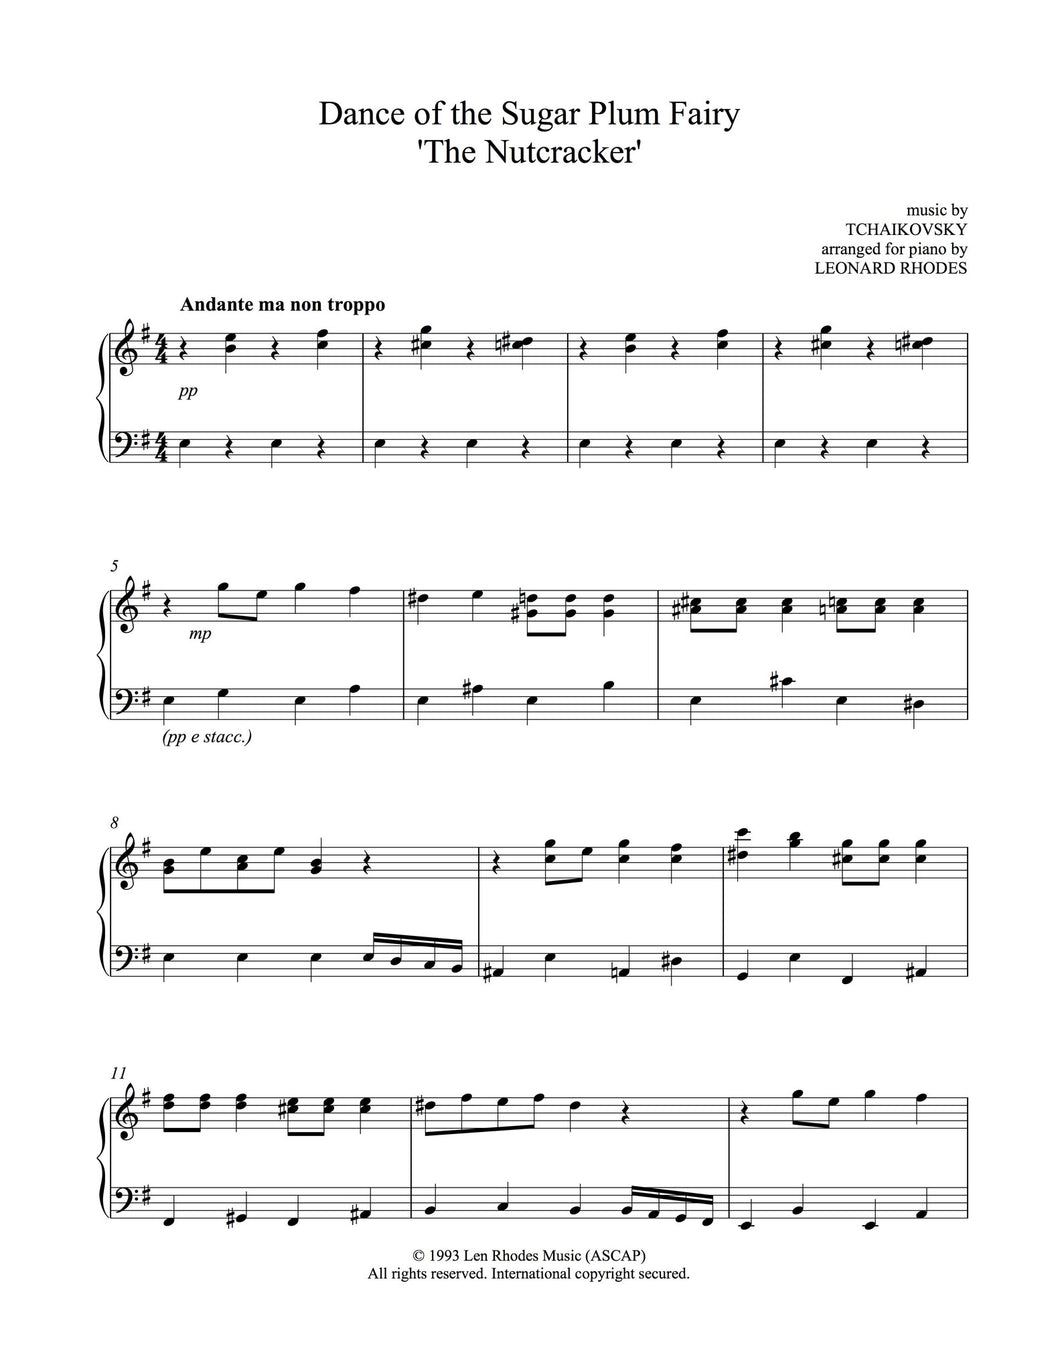 Tchaikovsky - Dance of the Sugar Plum Fairy from The Nutcracker, easy piano solo